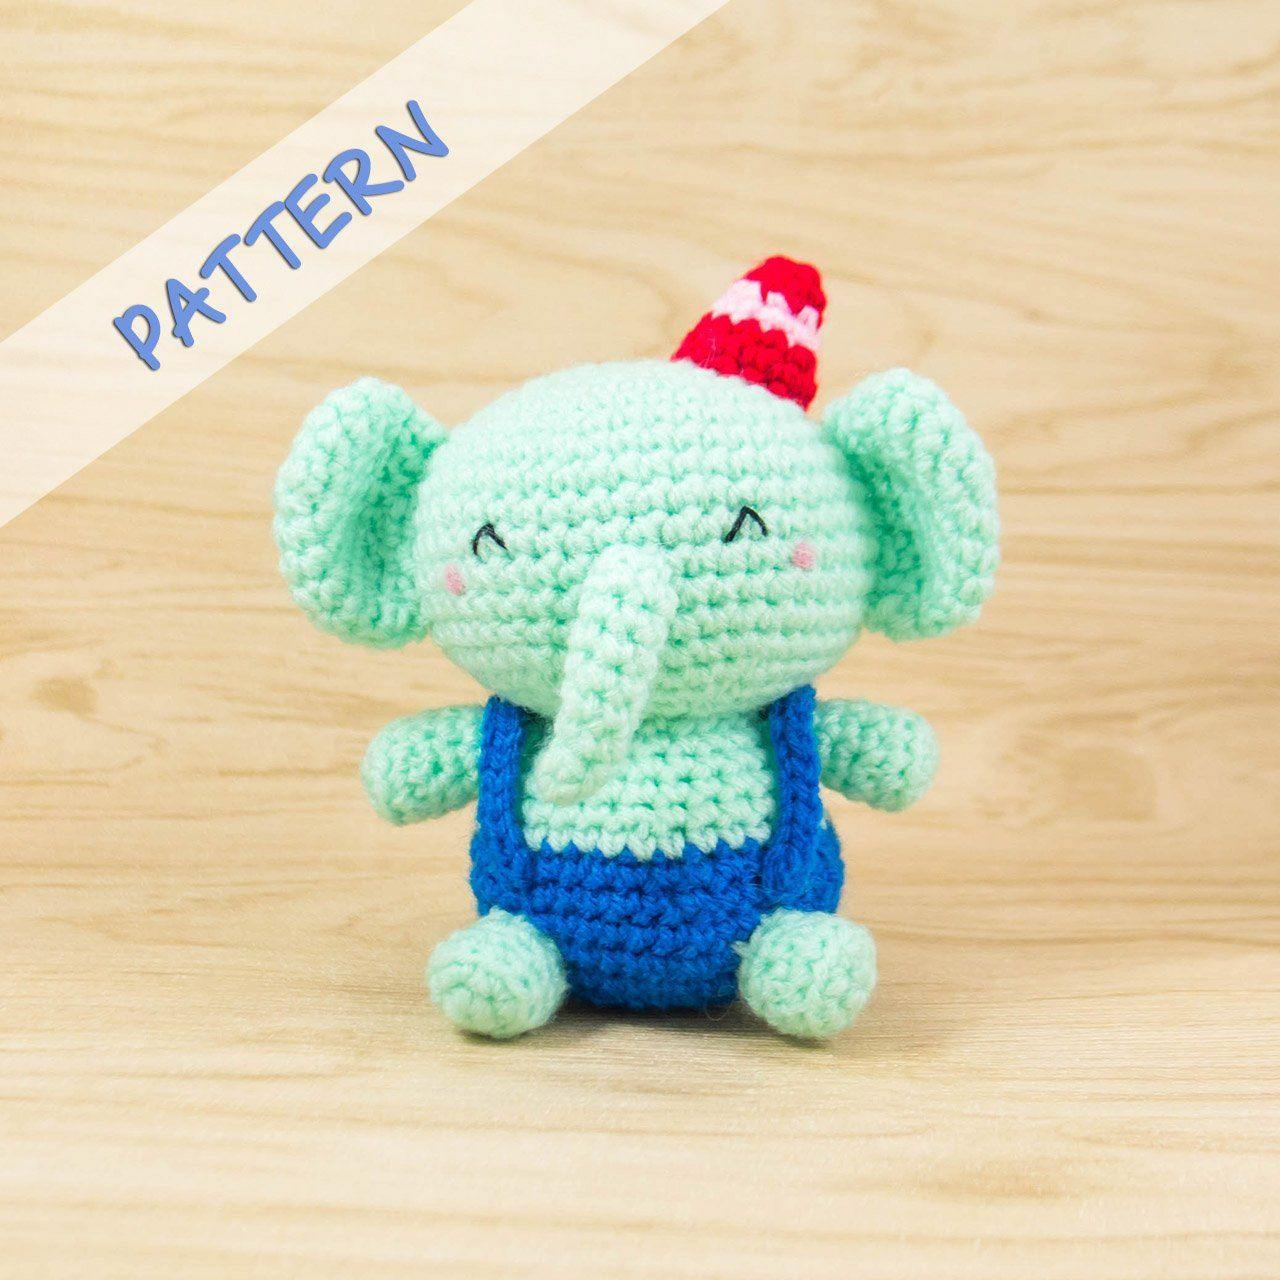 Free Crochet Pattern: Elephant Appliqué - Natalina Craft | 1280x1280